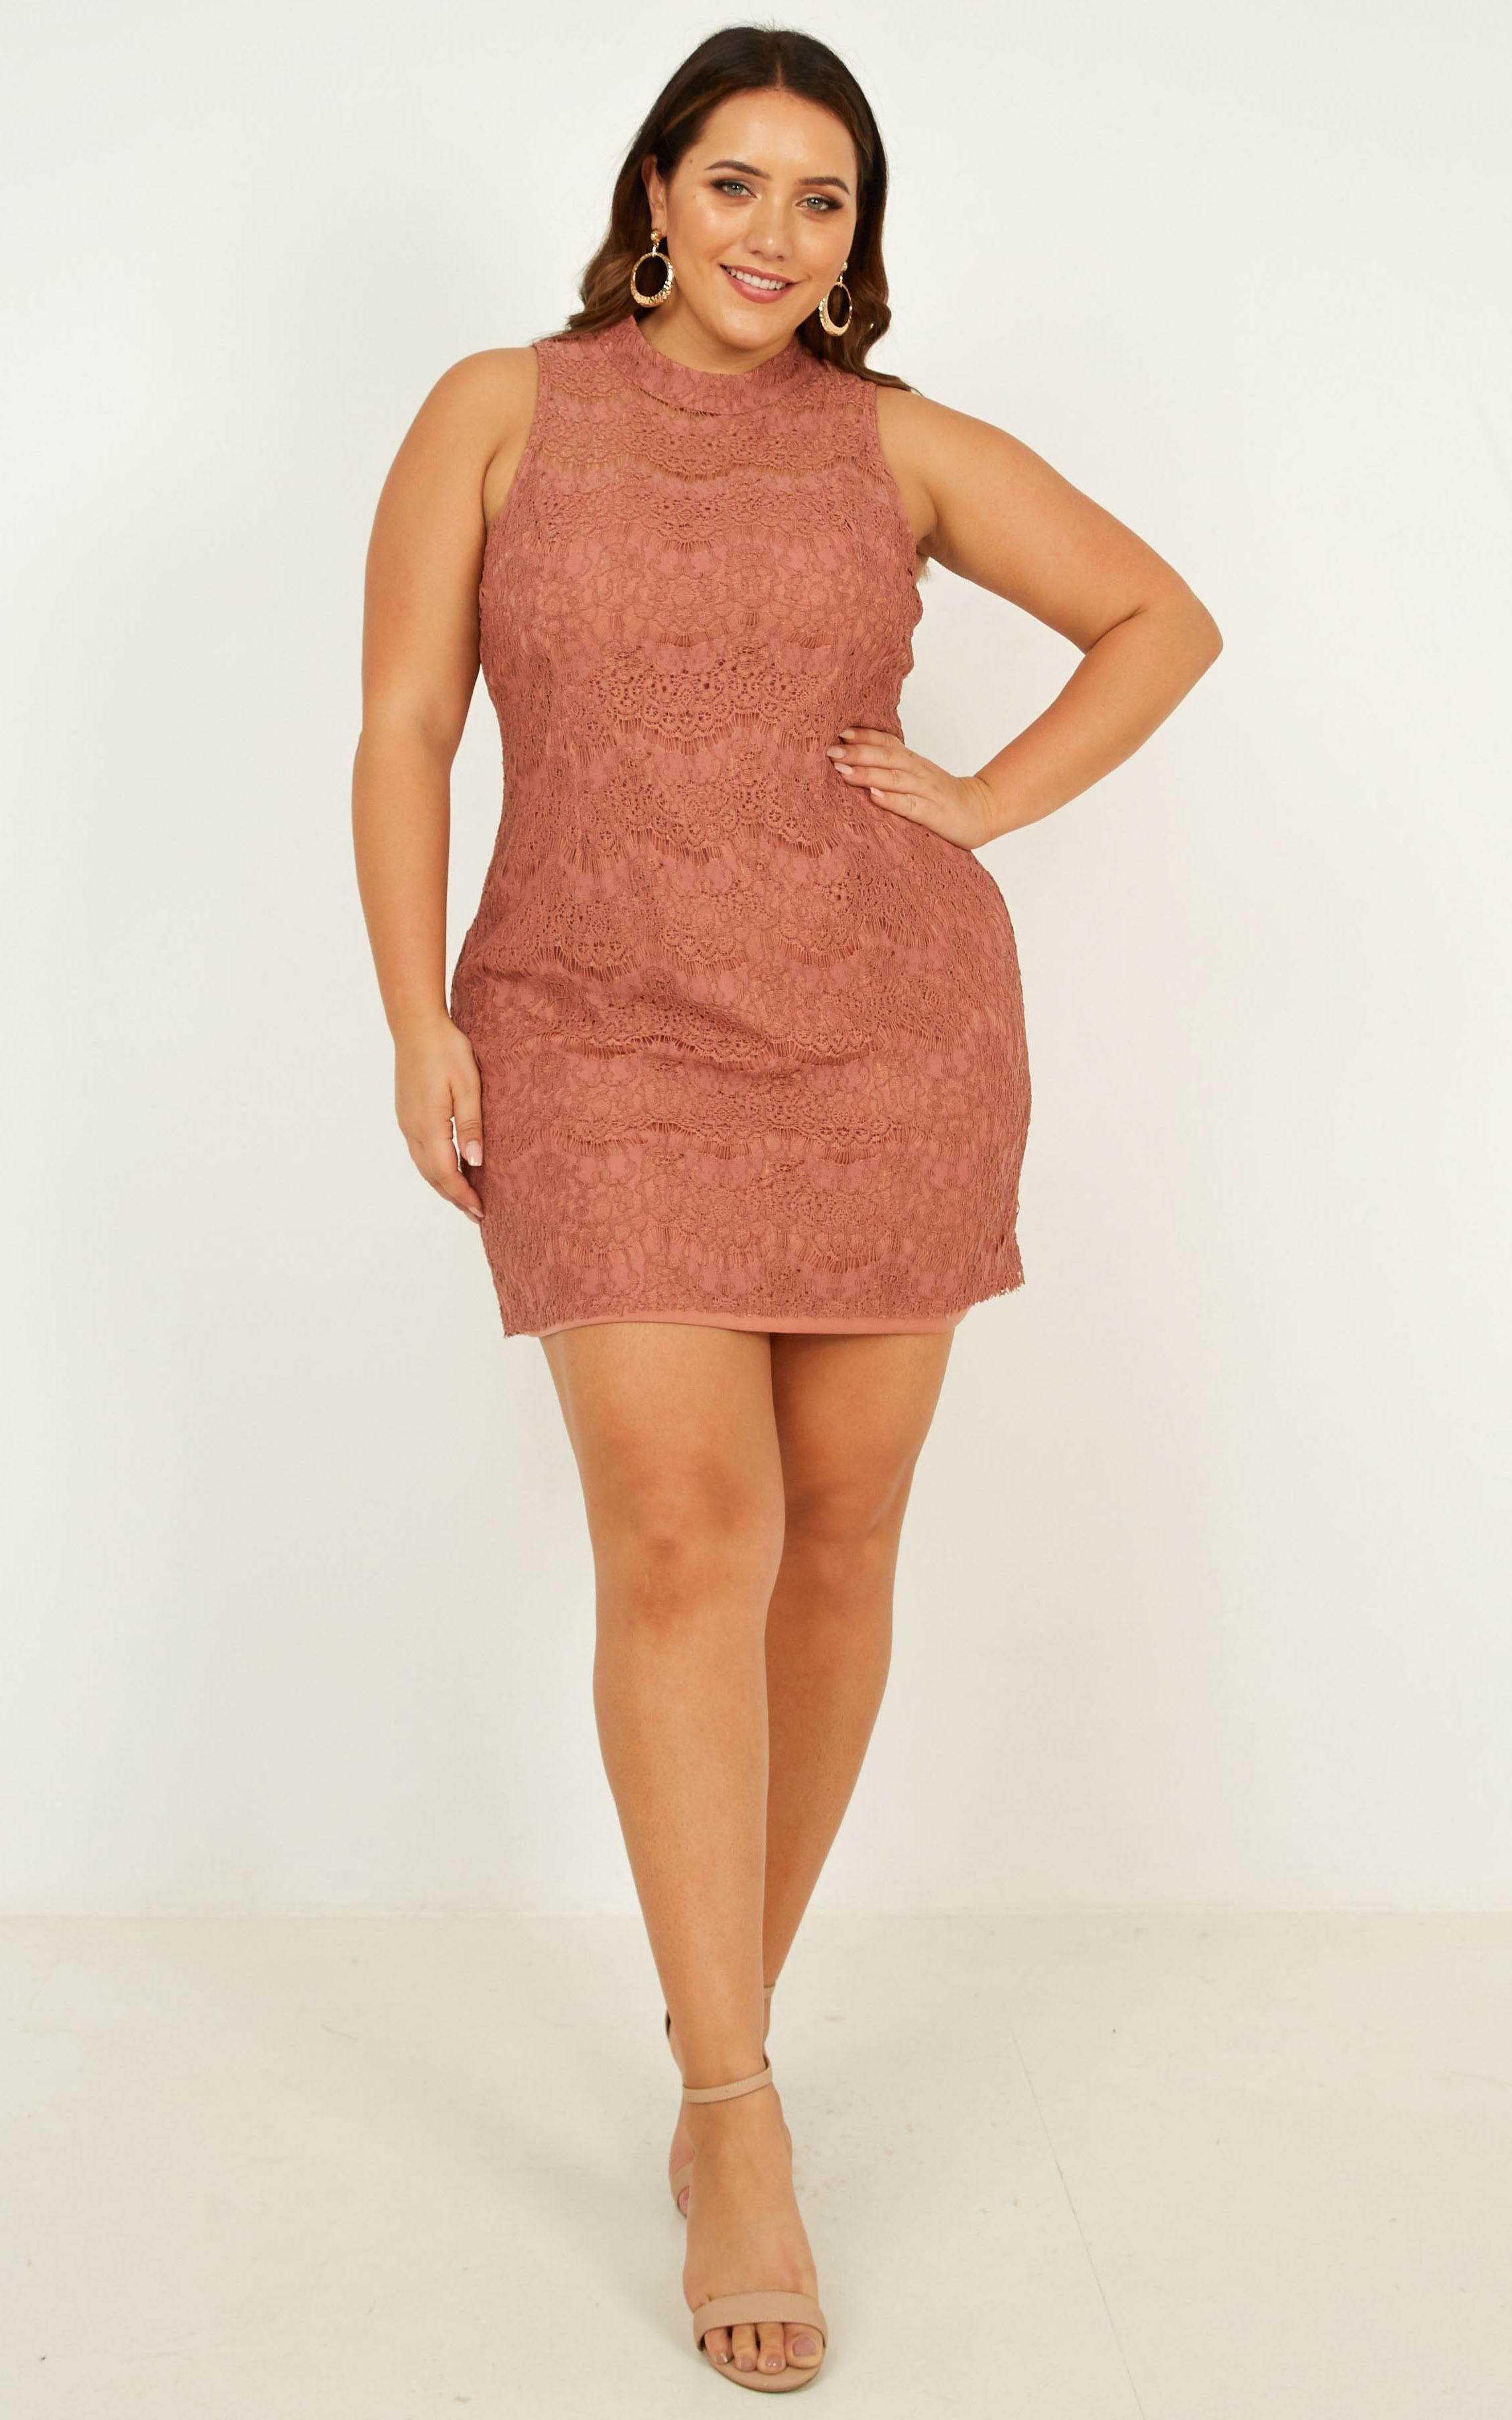 Get The Moves on Dress in dusty rose - 20 (XXXXL), Pink, hi-res image number null